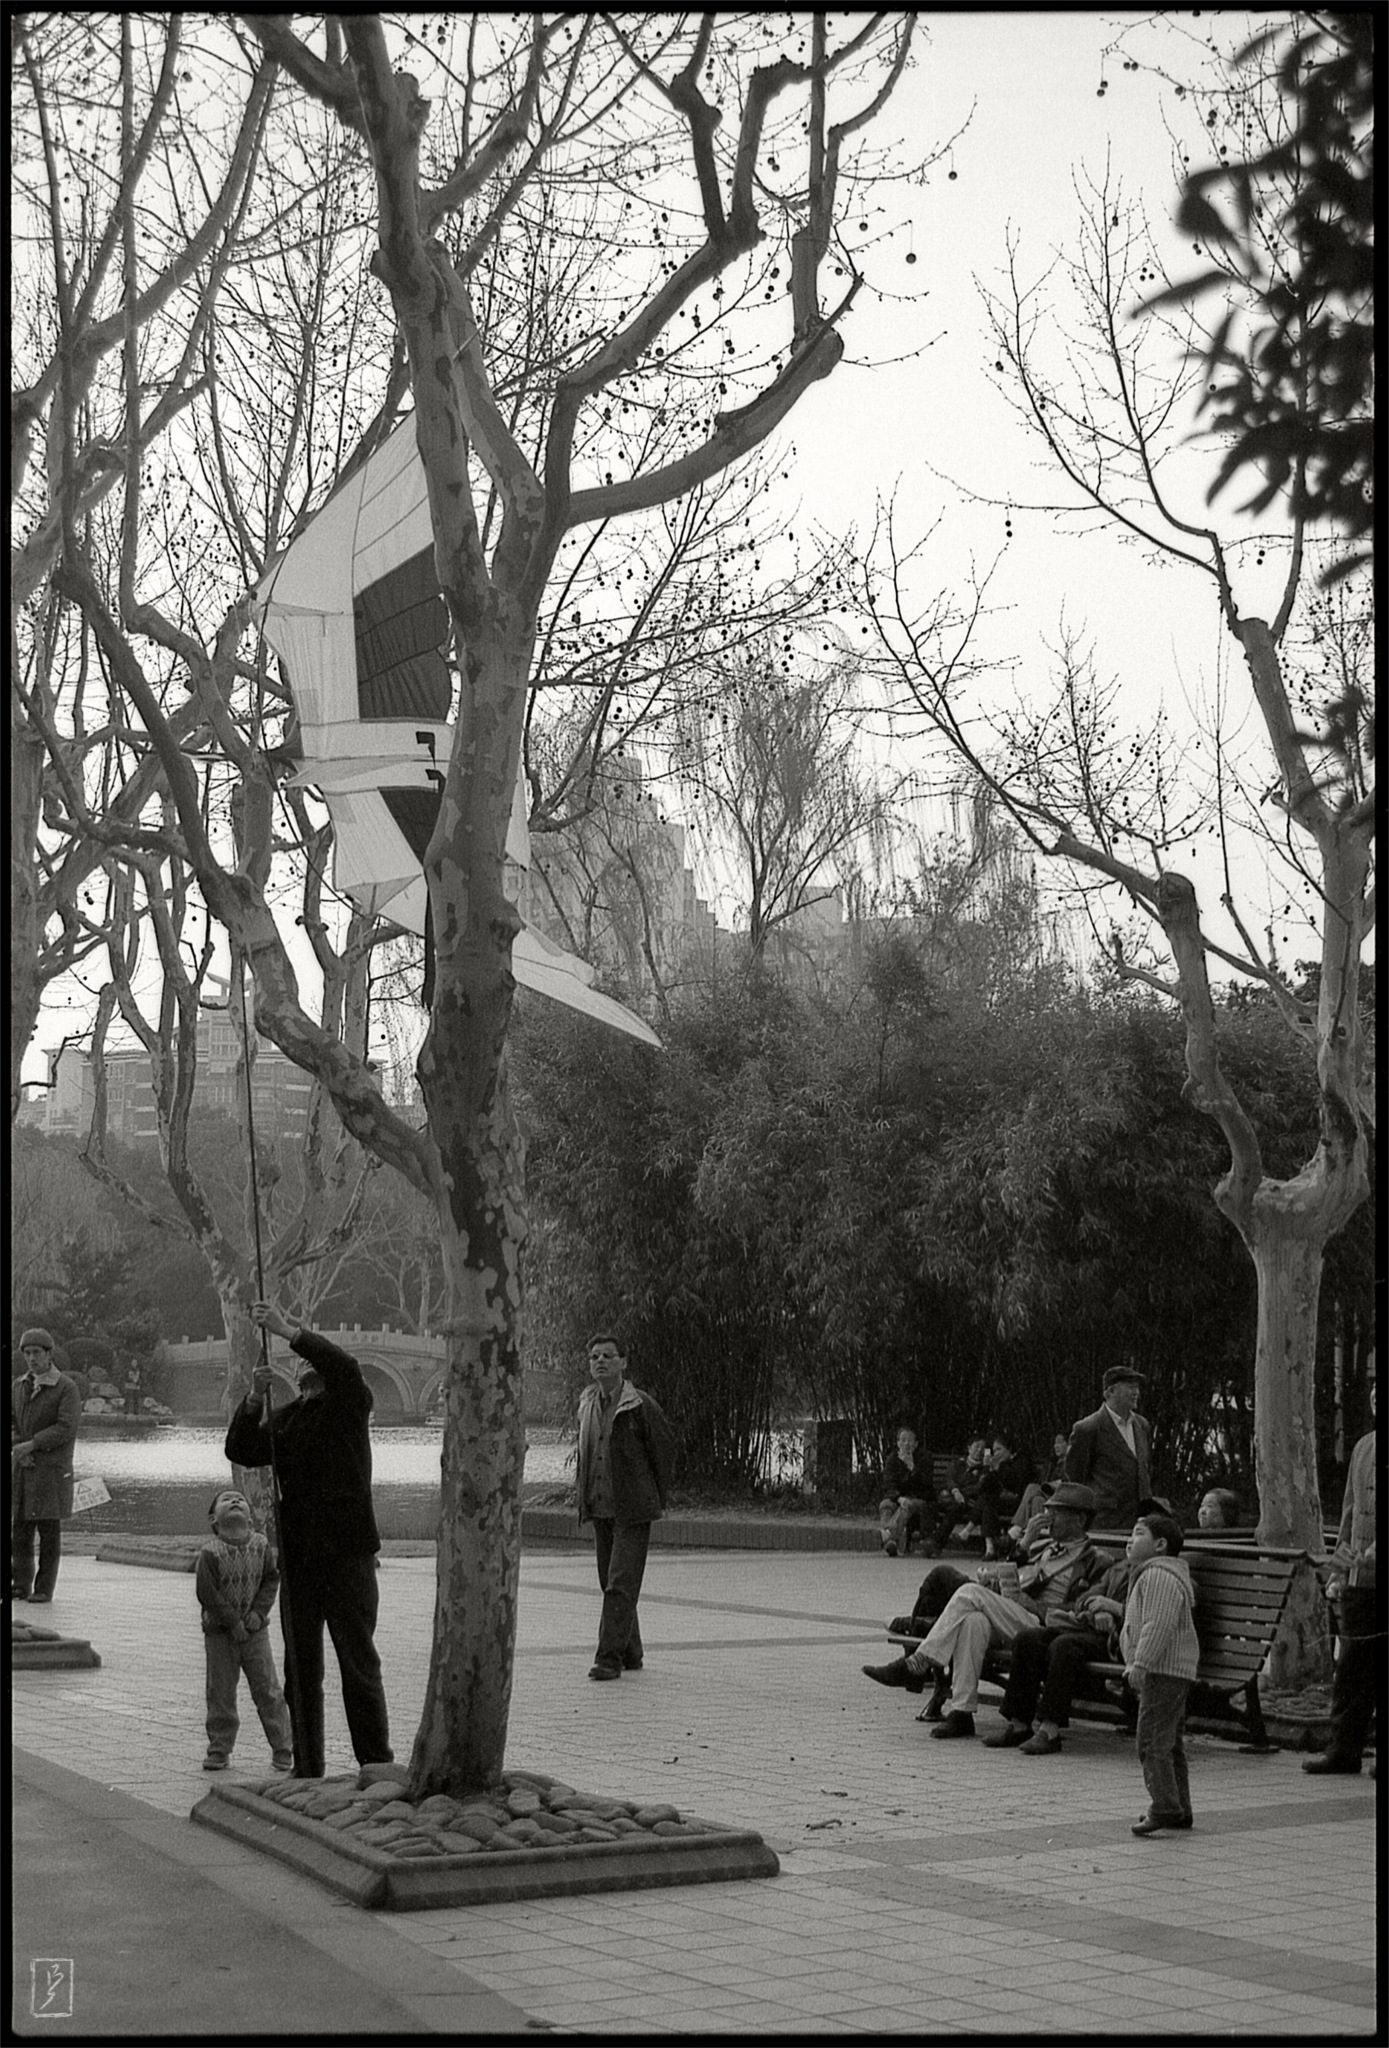 Yangpu park (杨浦公园): Getting a kite down from a tree.